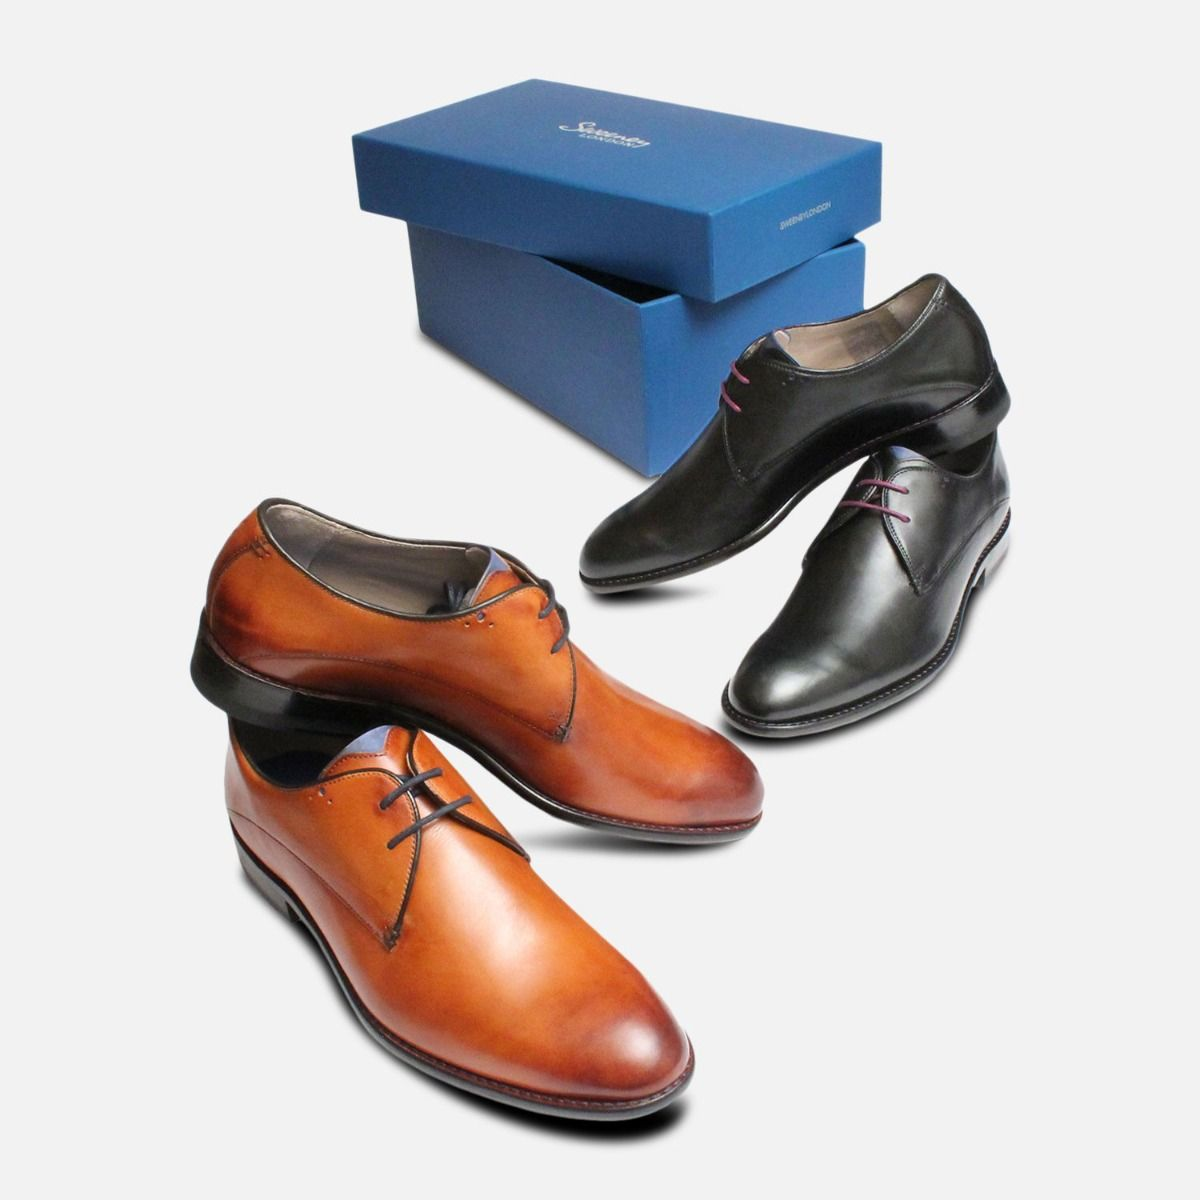 Black Lace Up Dress Shoes Knole by Oliver Sweeney